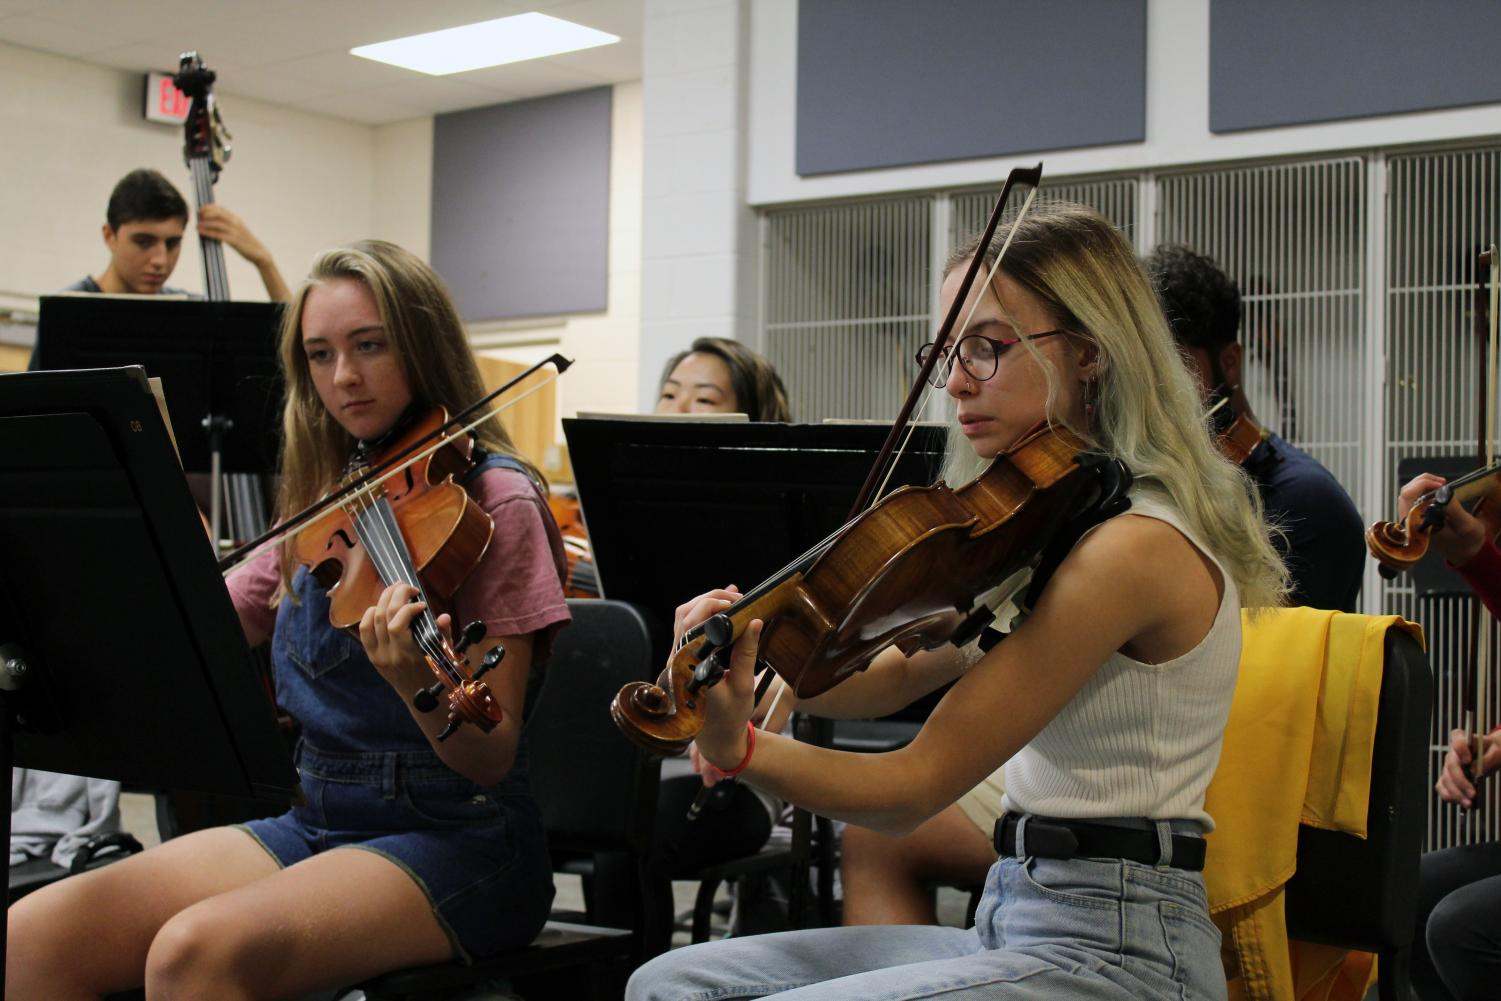 Seniors Grace Hart and Liz Efken practice their Shostakovich piece with their violas as they wait for director Nate McClendon to arrive for class. The orchestra began rehearsing earlier in the week in preparation for the day when they must play it completely by memory.